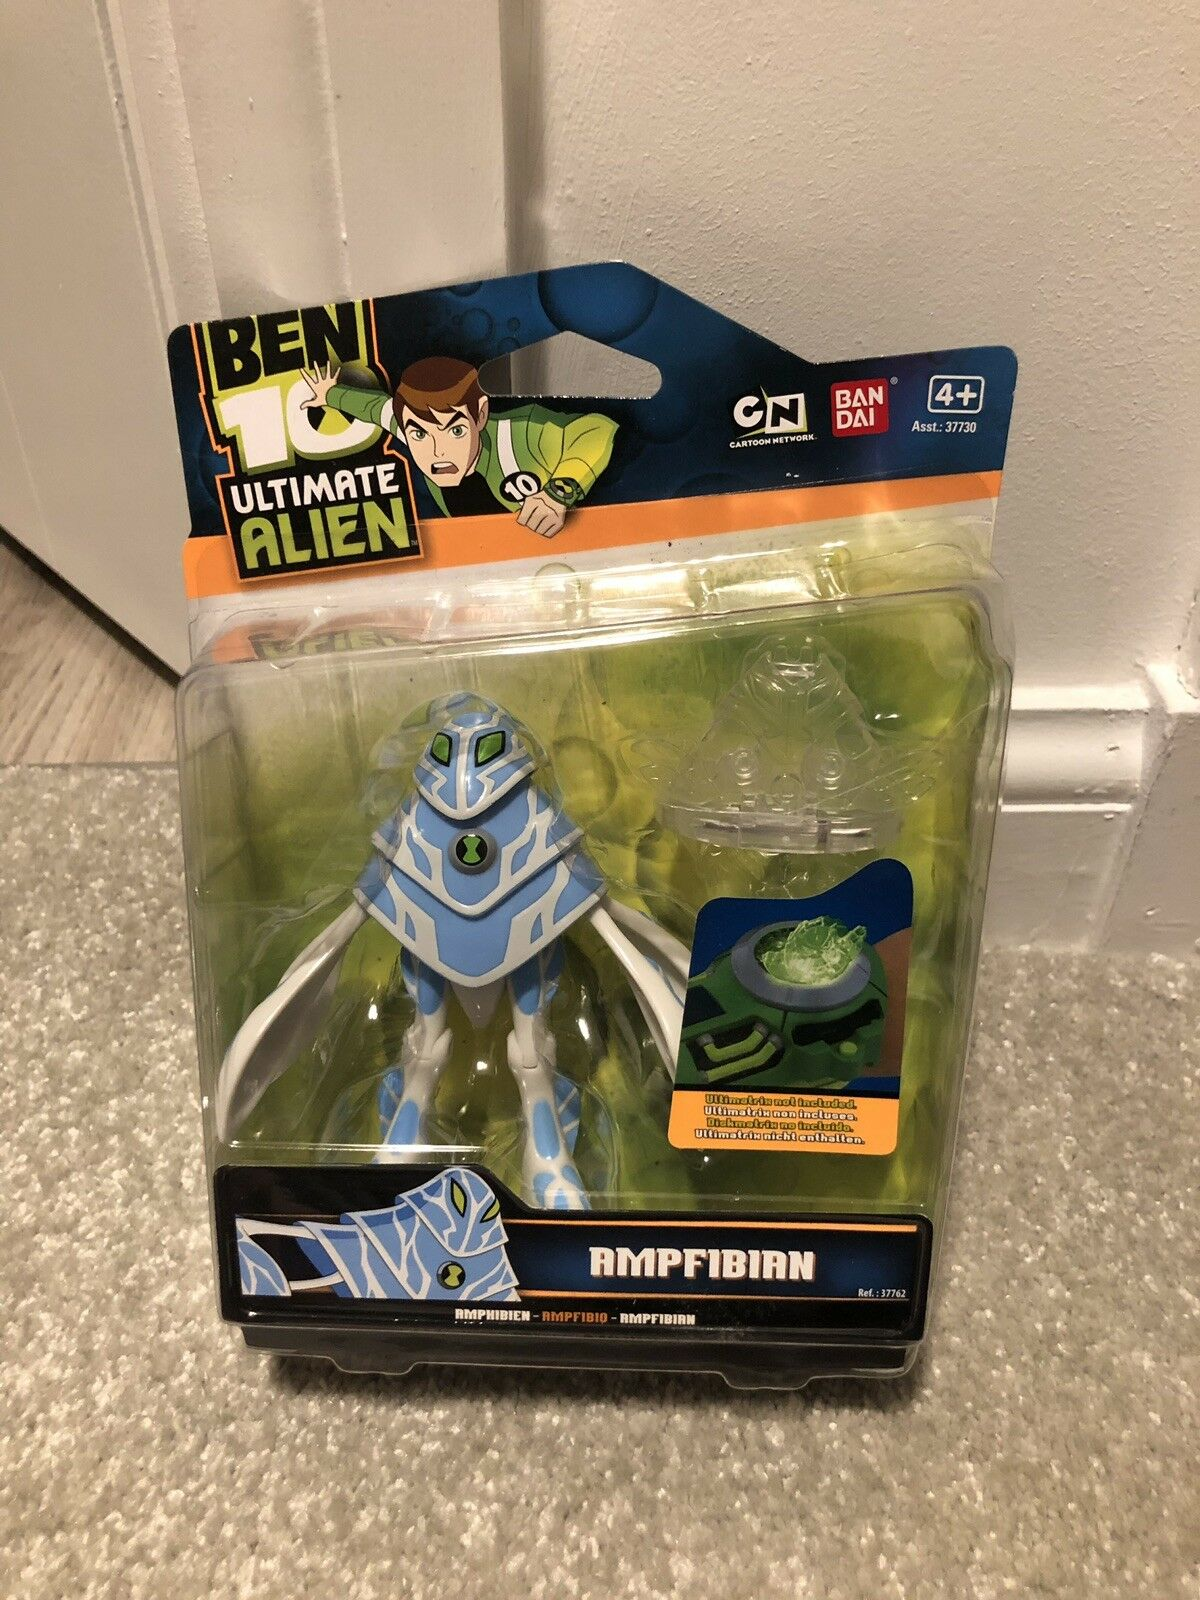 Ben 10 figure Ampfibian Ultimate Alien